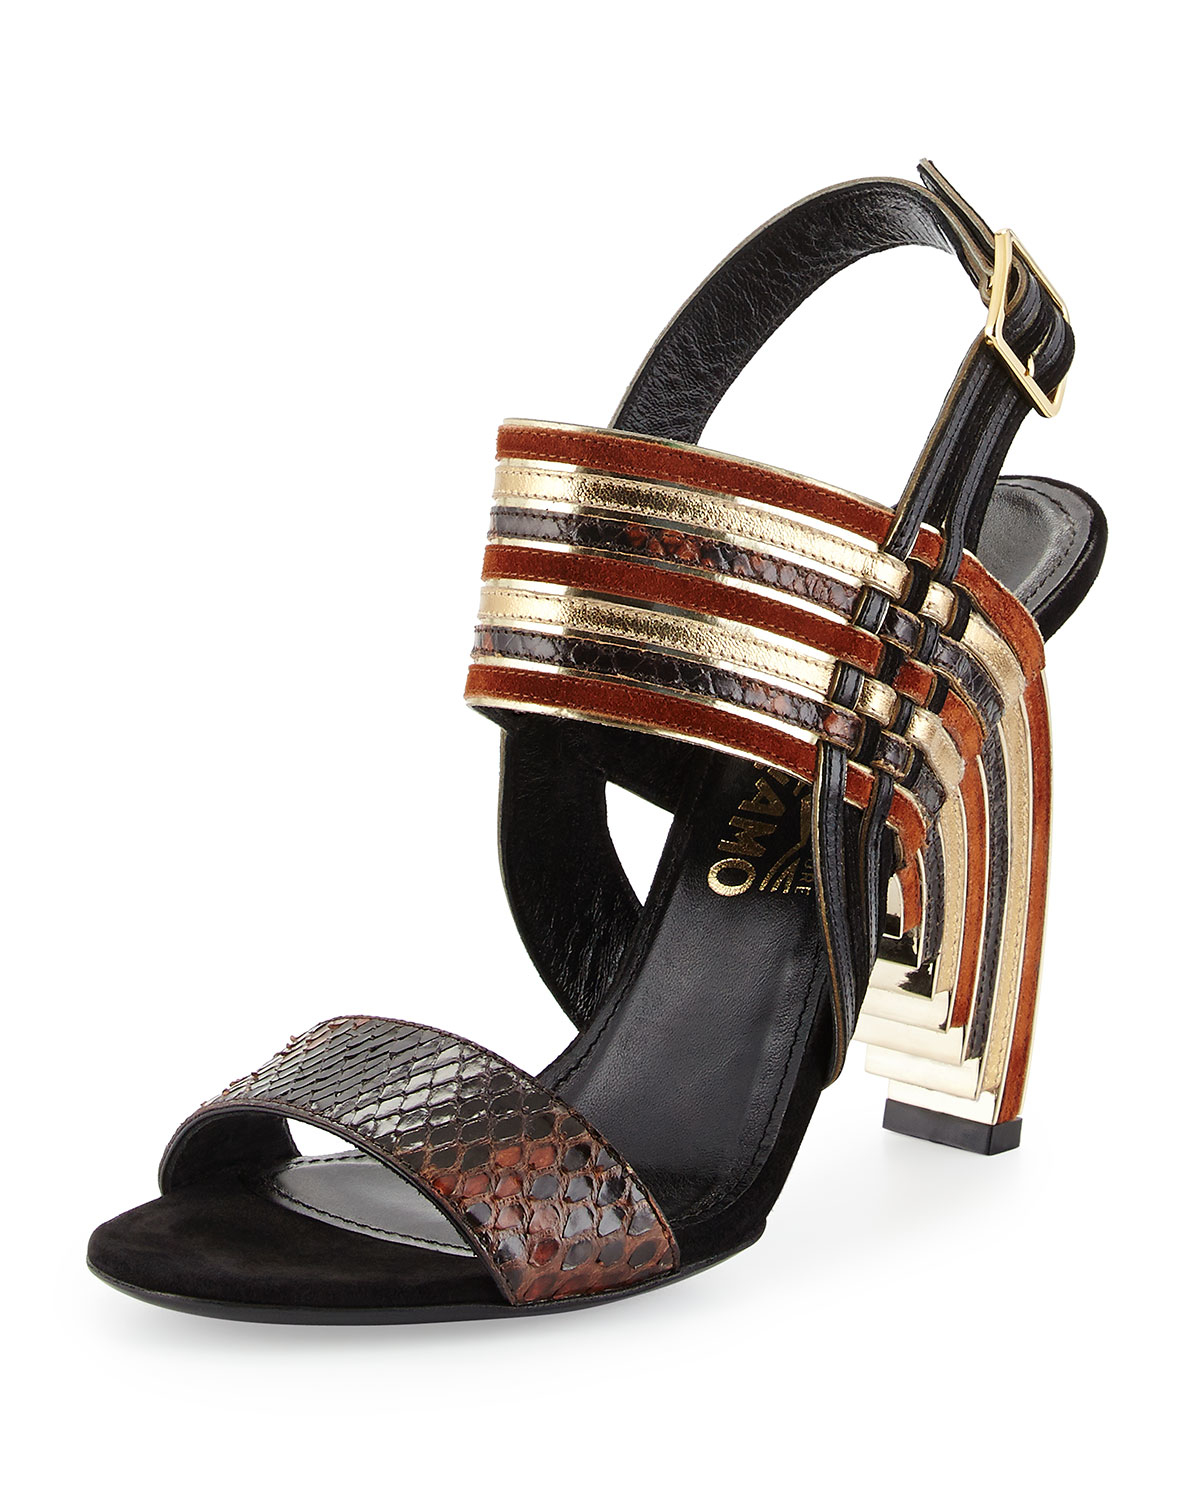 Ferragamo Lenny Python And Leather Geometric Sandals In